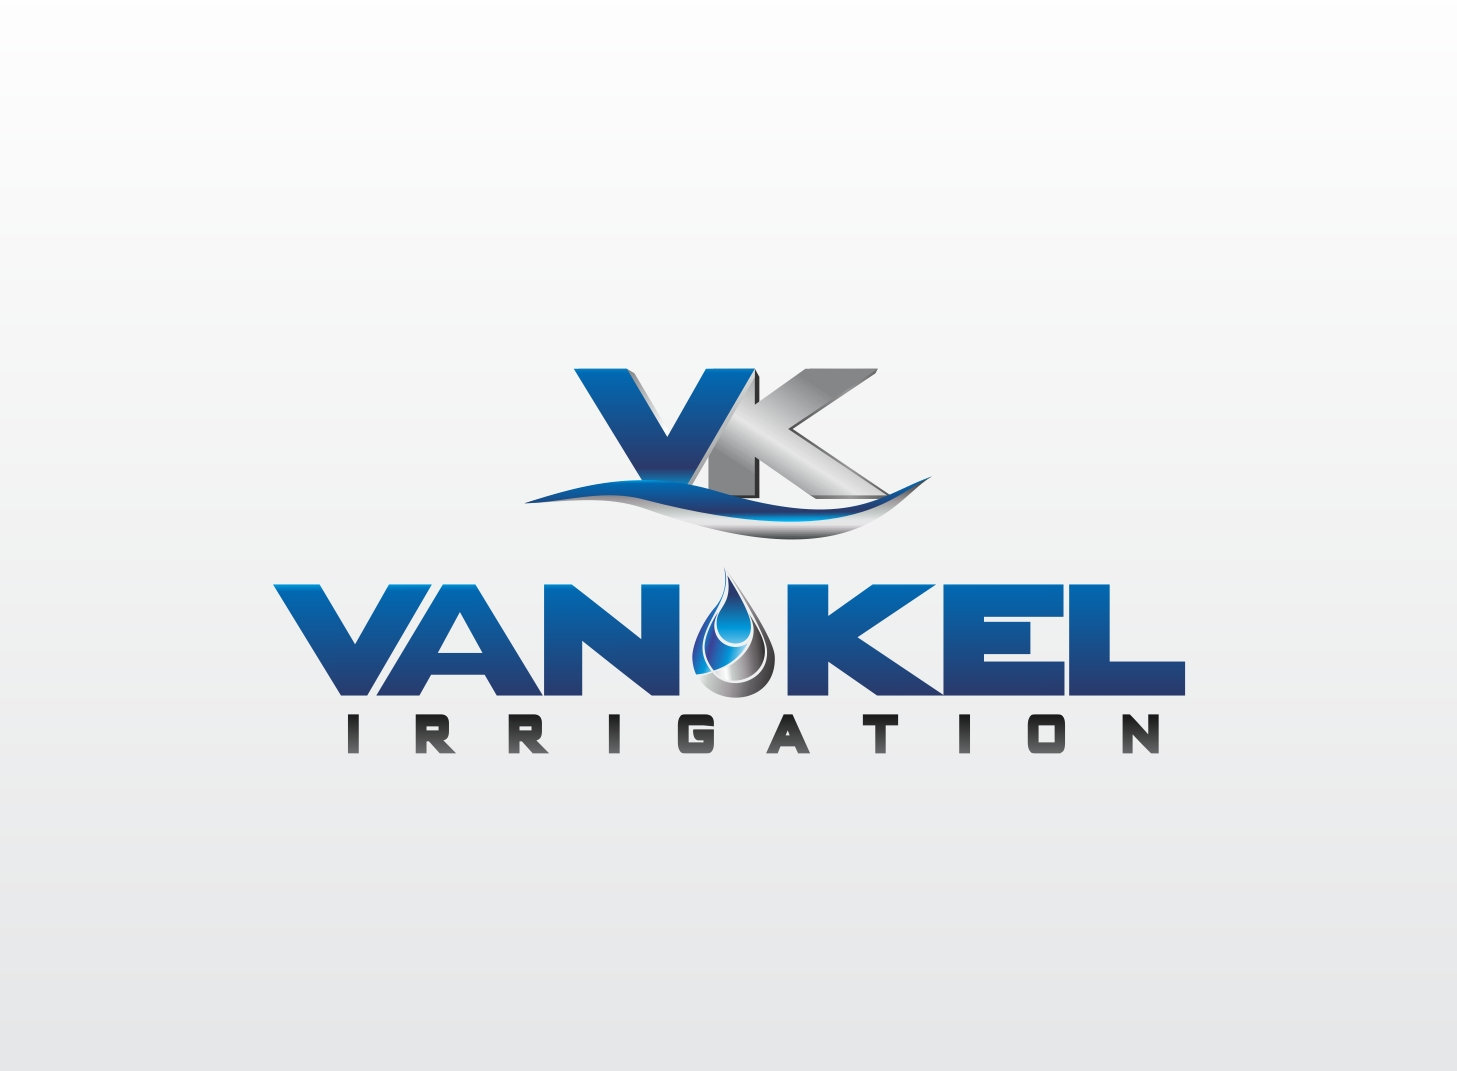 Logo Design by Zdravko Krulj - Entry No. 288 in the Logo Design Contest Van-Kel Irrigation Logo Design.